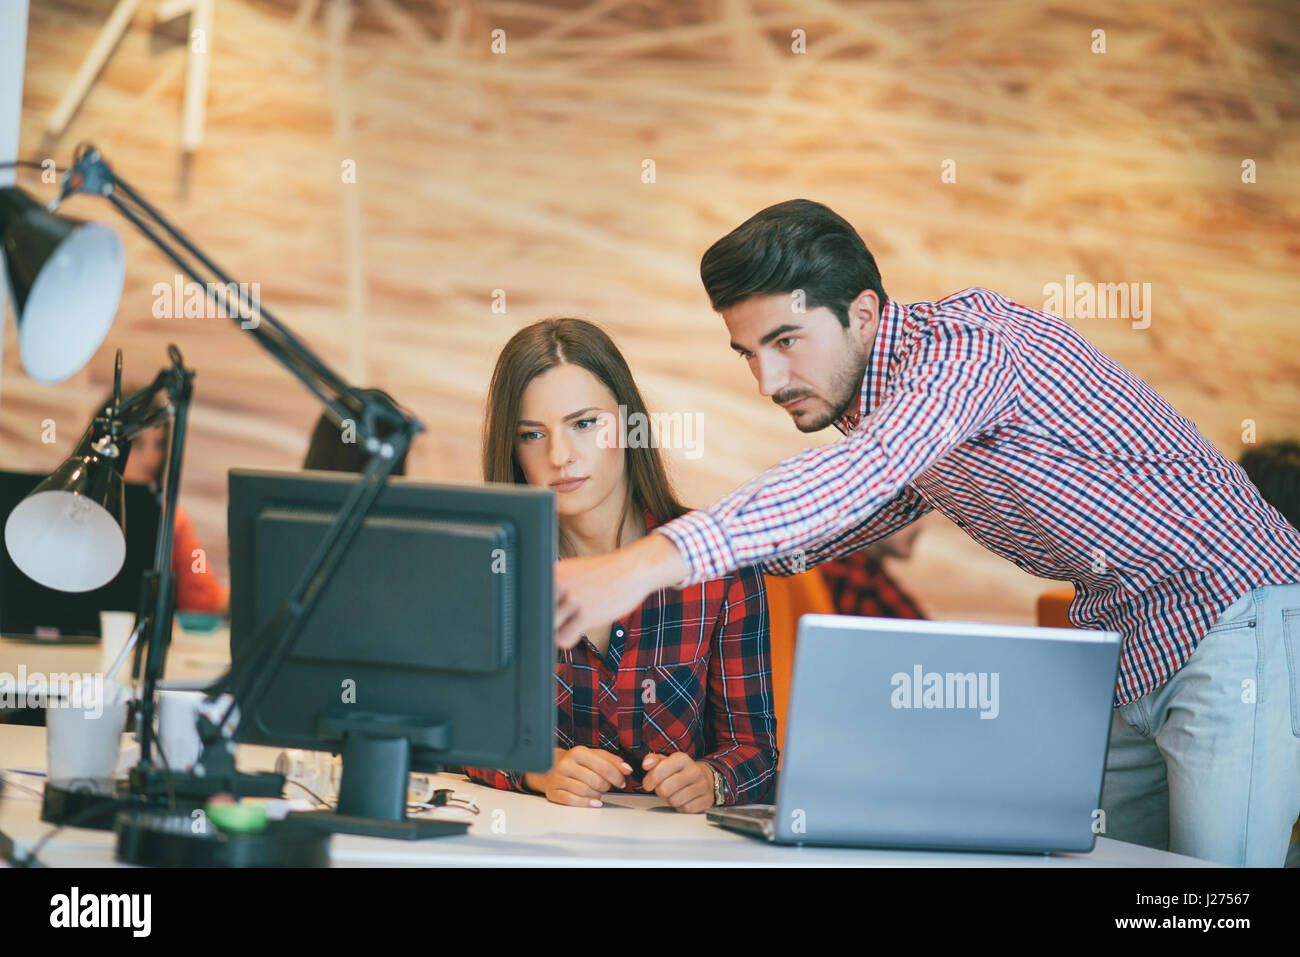 business couple working together on project at modern startup office - Stock Image